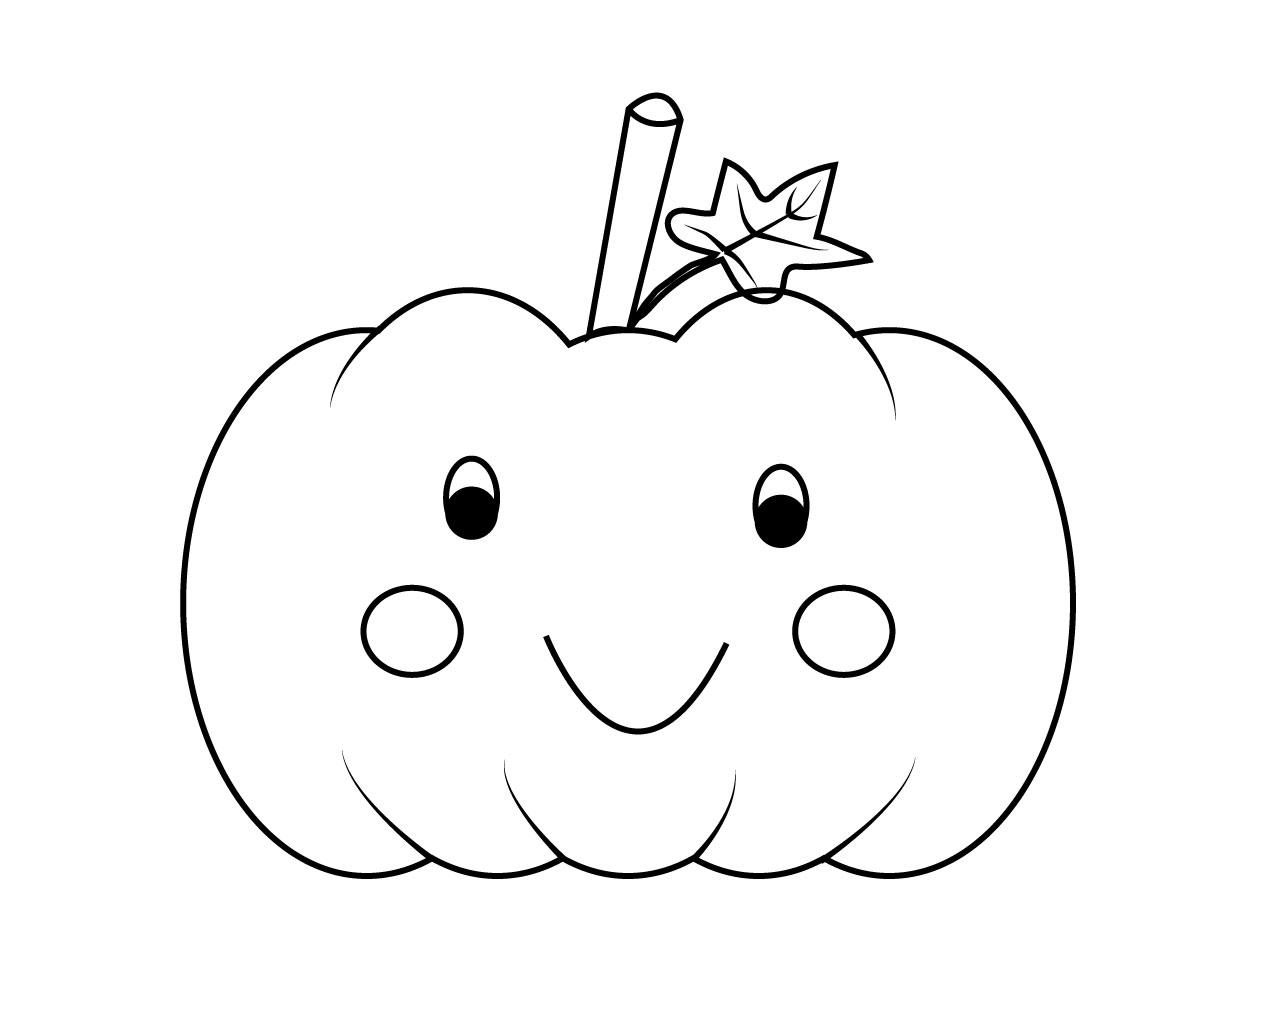 color a pumpkin pumpkin cute smile on pumpkin to color coloring pages pumpkin color a